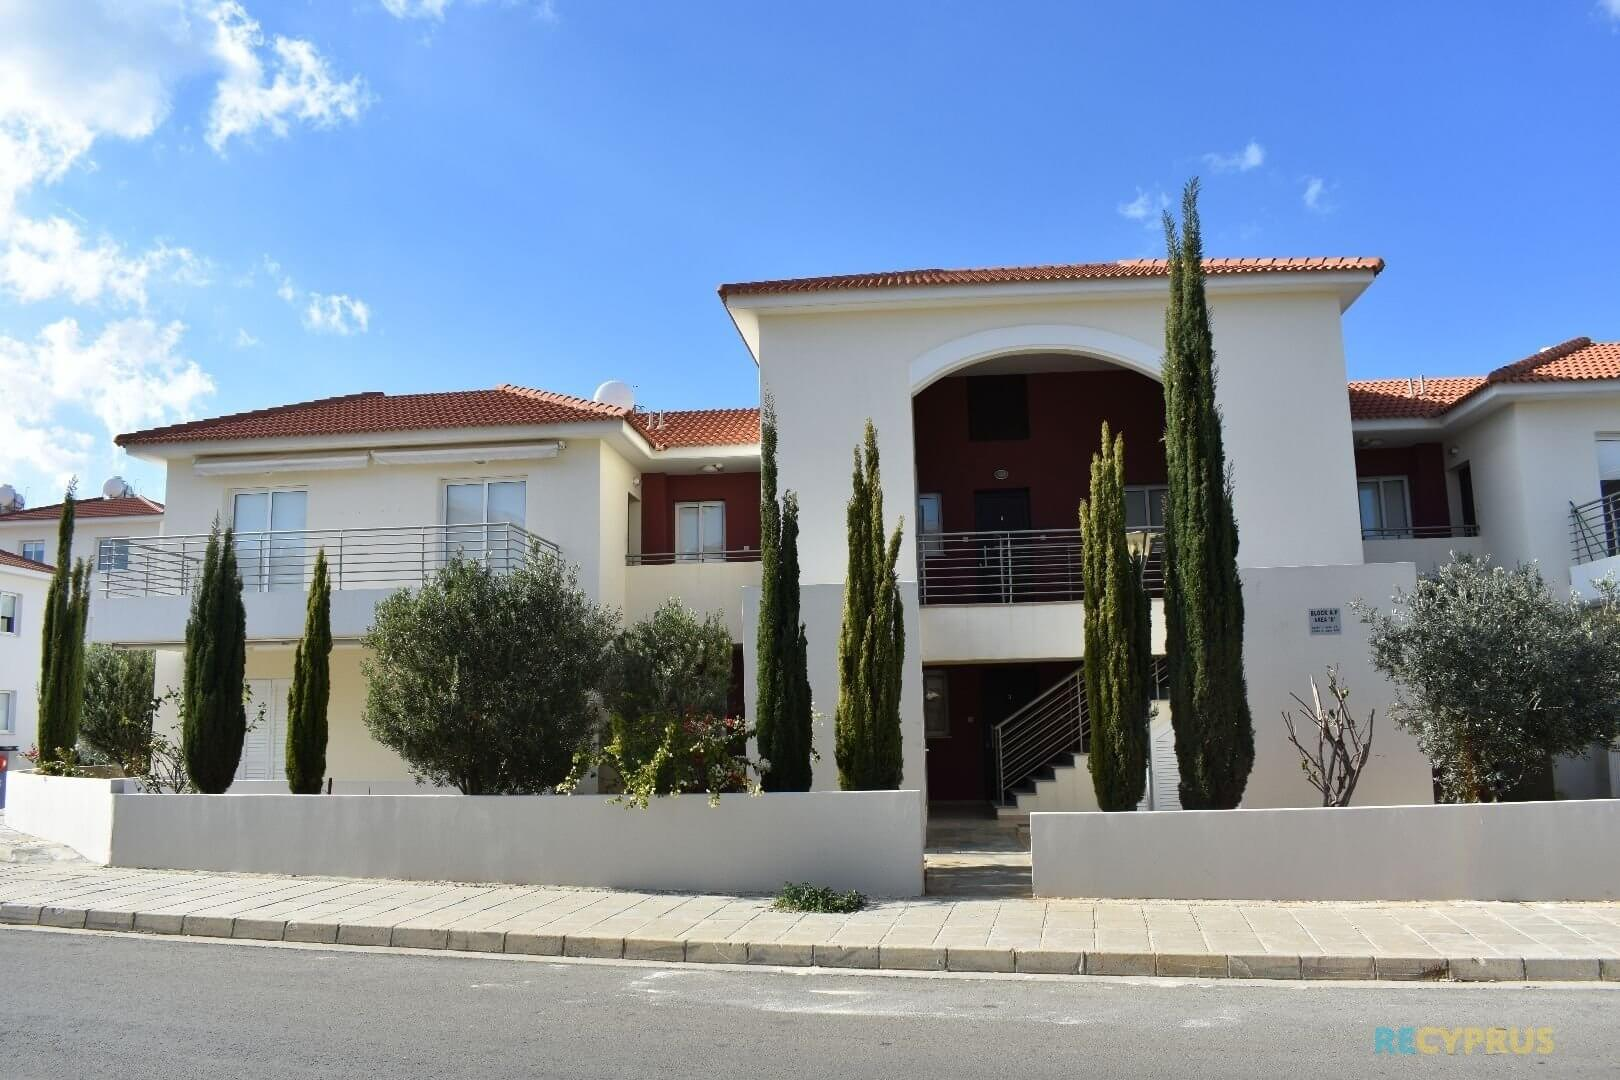 Apartment for sale Kapparis Famagusta Cyprus 3 3517